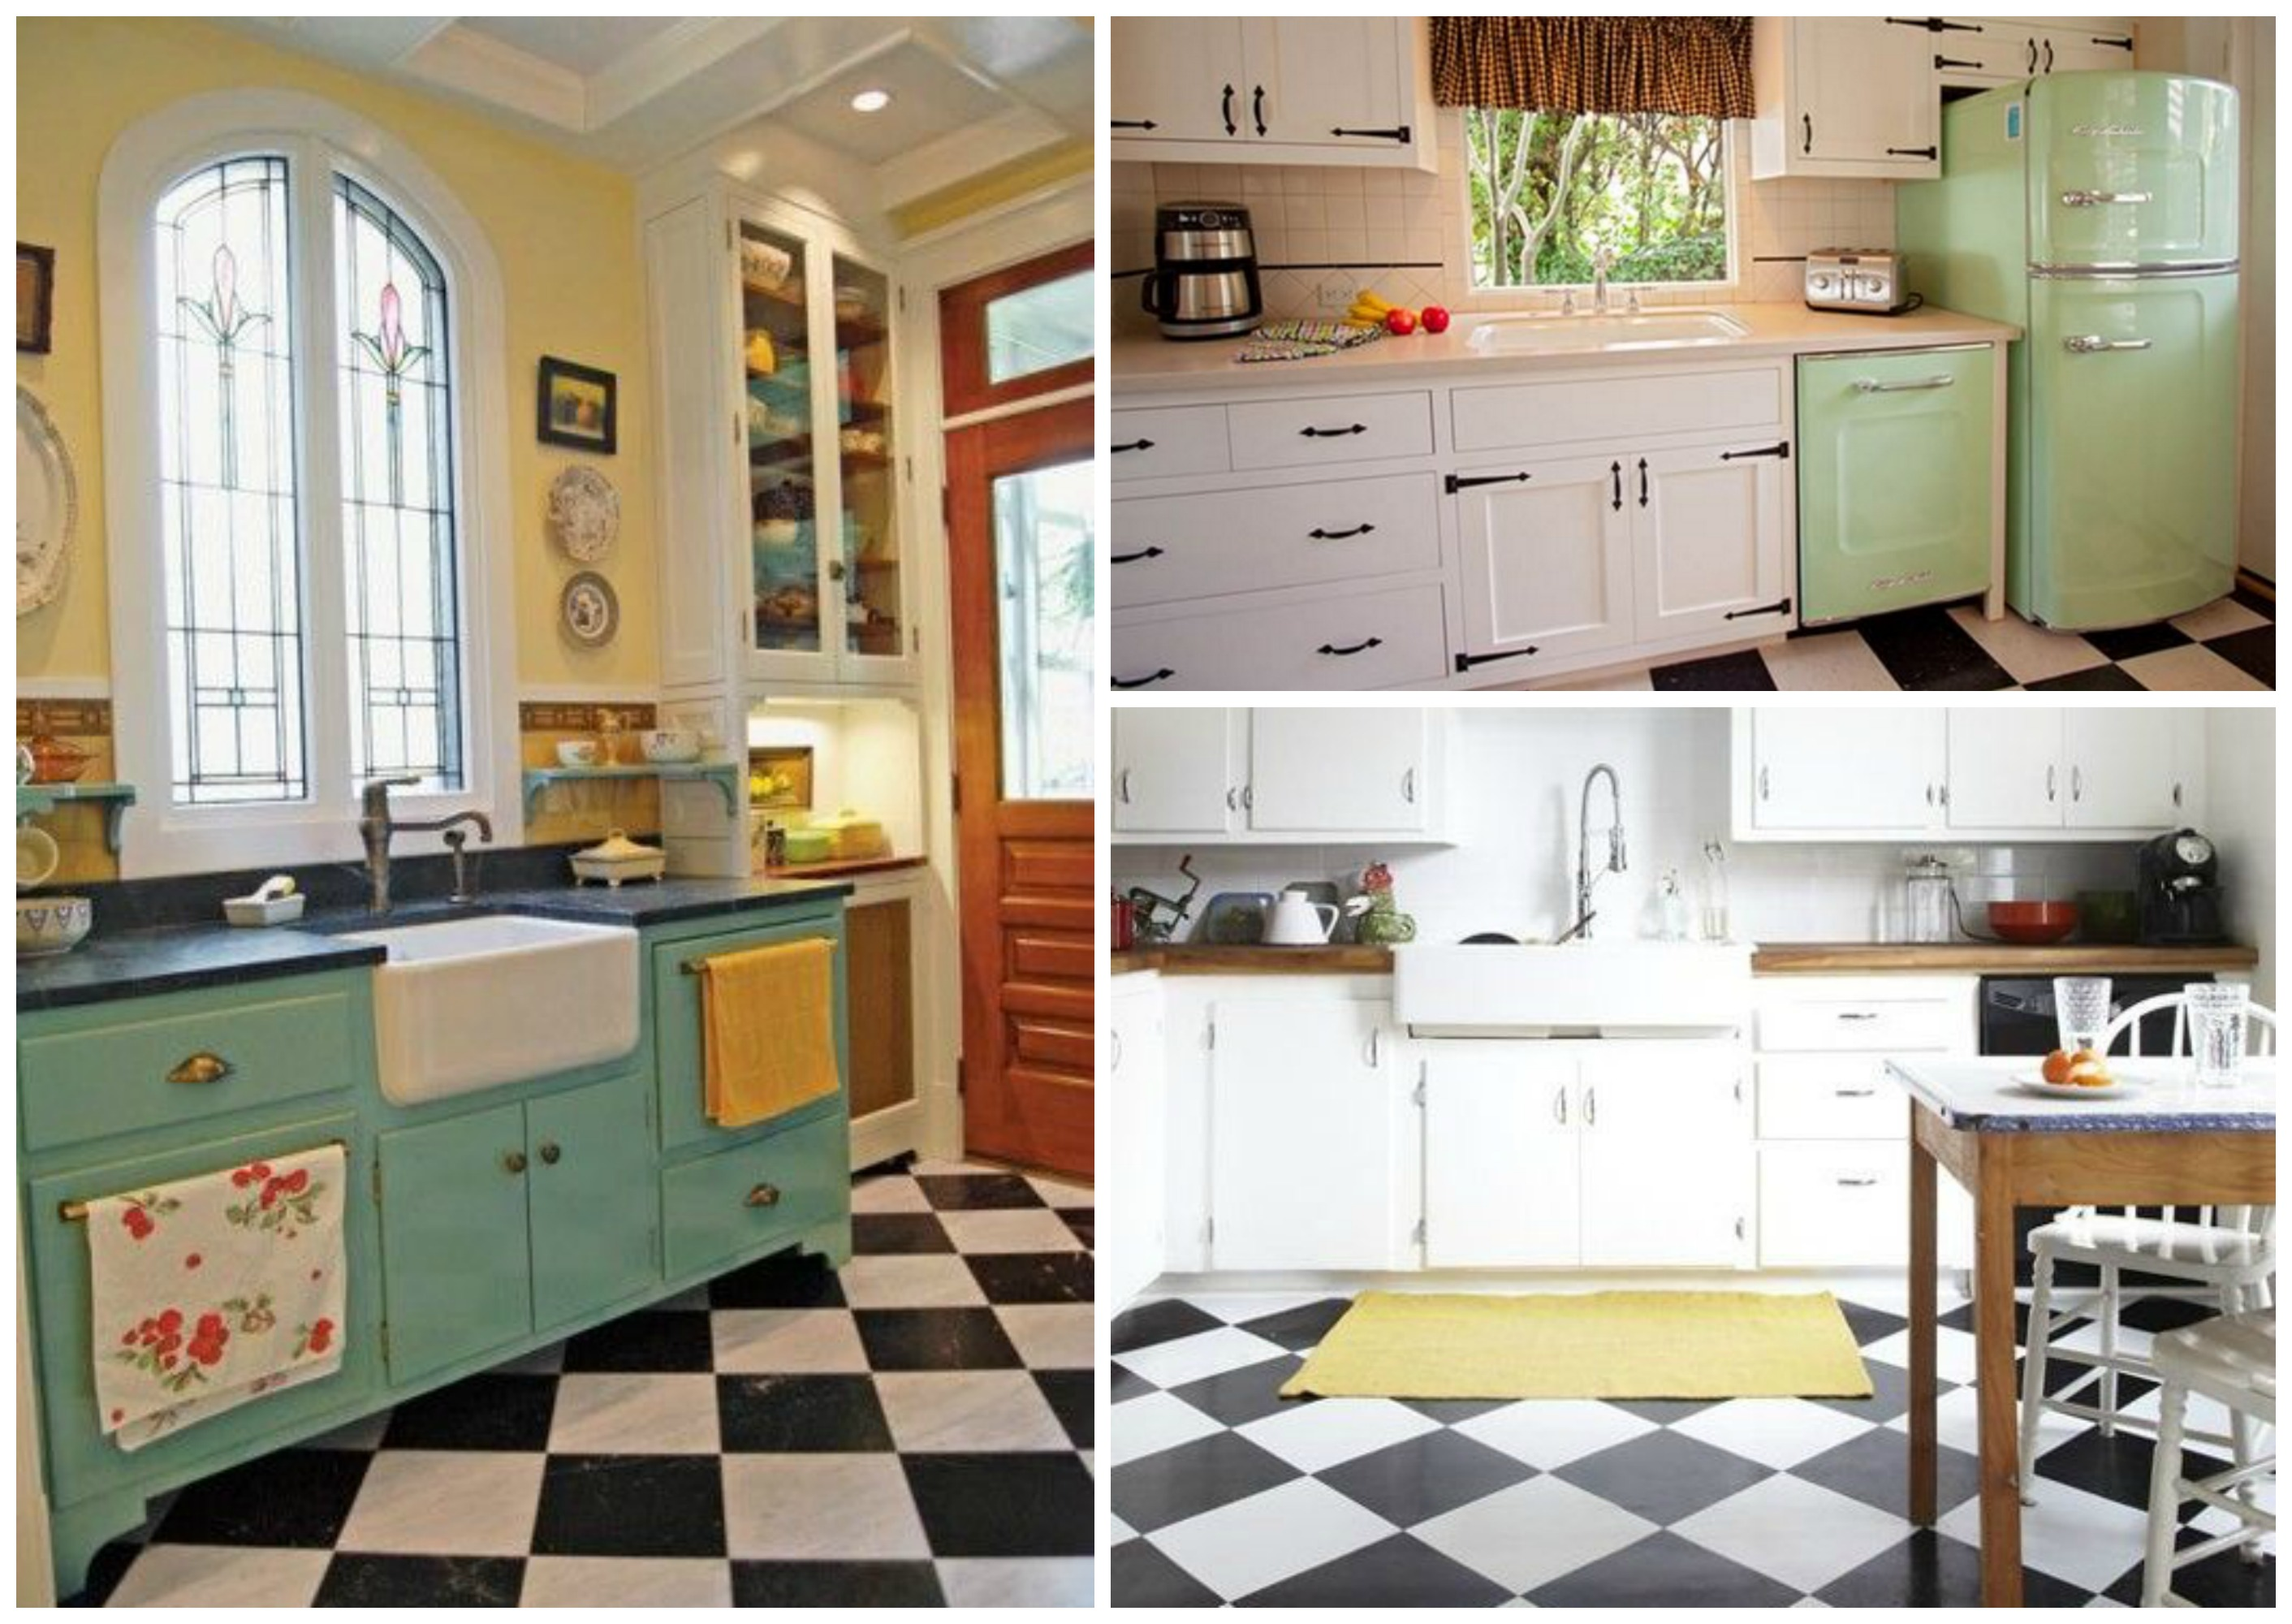 4 Things To Have For Retro Kitchen